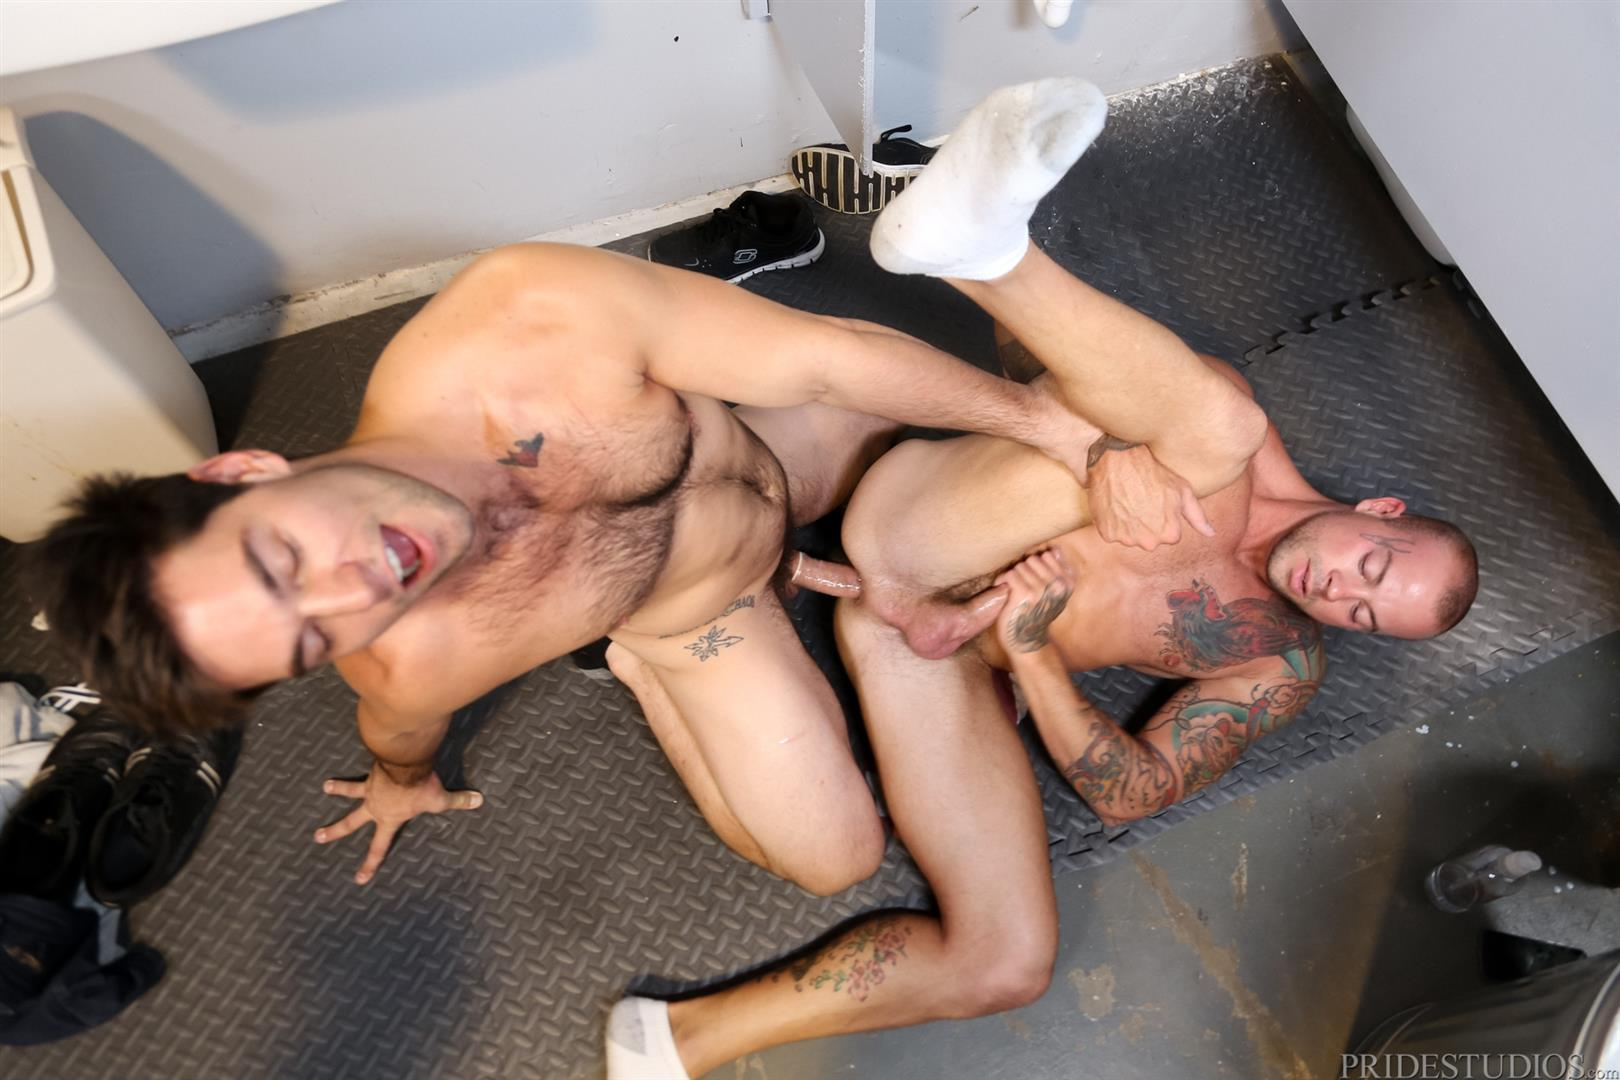 Extra-Big-Dicks-Sean-Duran-Fucking-Through-A-Glory-Hole-Amateur-Gay-Porn-15 Getting Fucked By A Big Fat Cock Through a Glory Hole